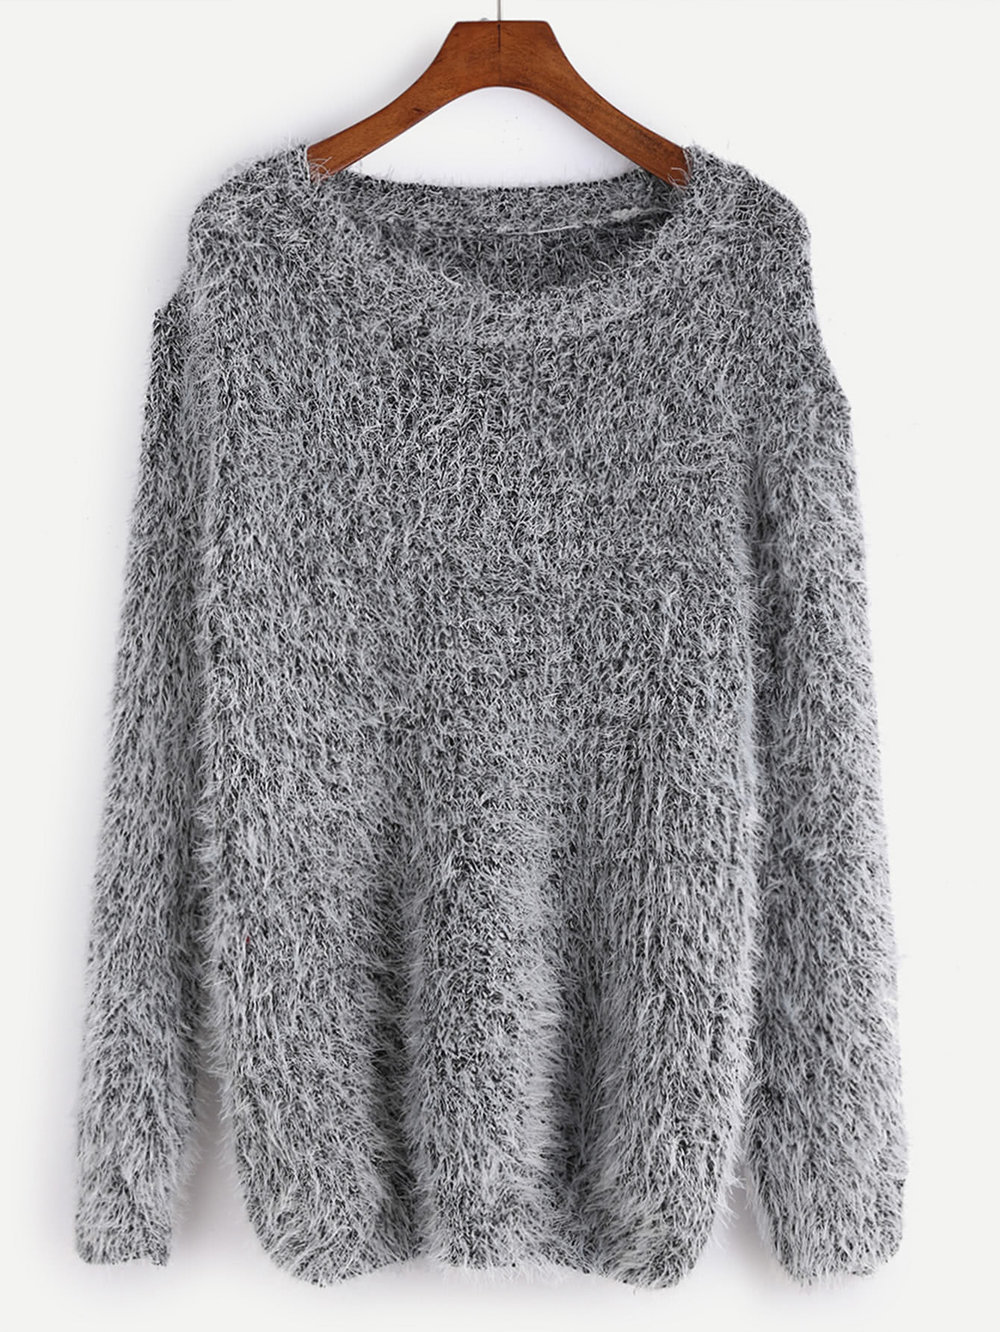 cyber monday sales romwe fuzzy grey sweater.jpg